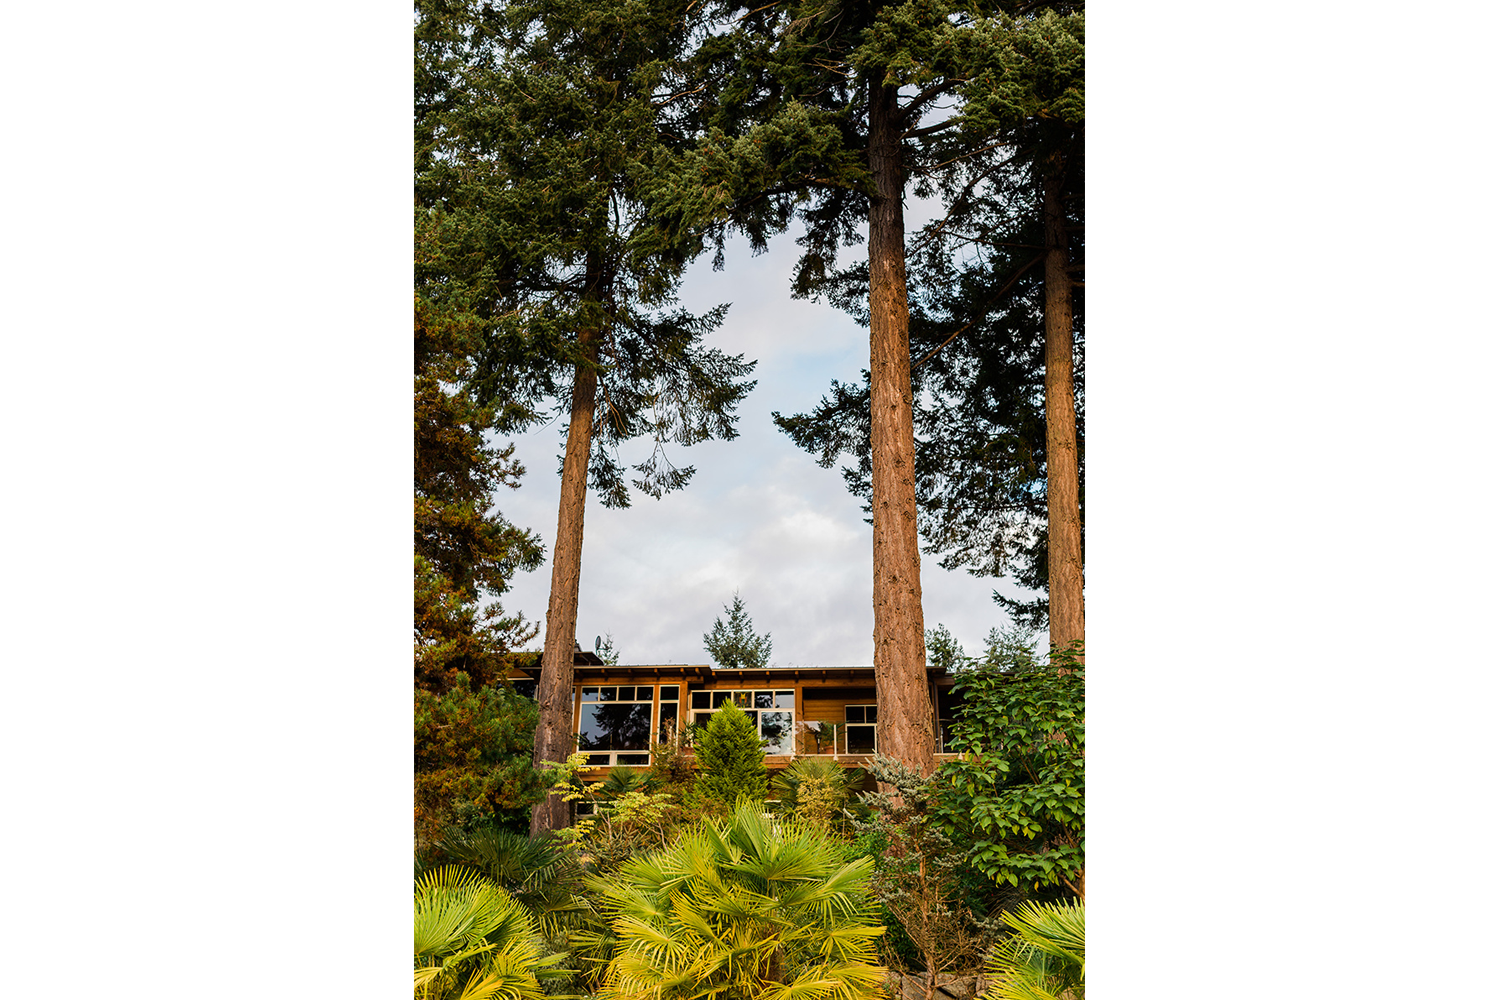 Tall pine trees stand on either side of this magnificent 4 bedroom home for rent at John Henry's Marina and Resort.